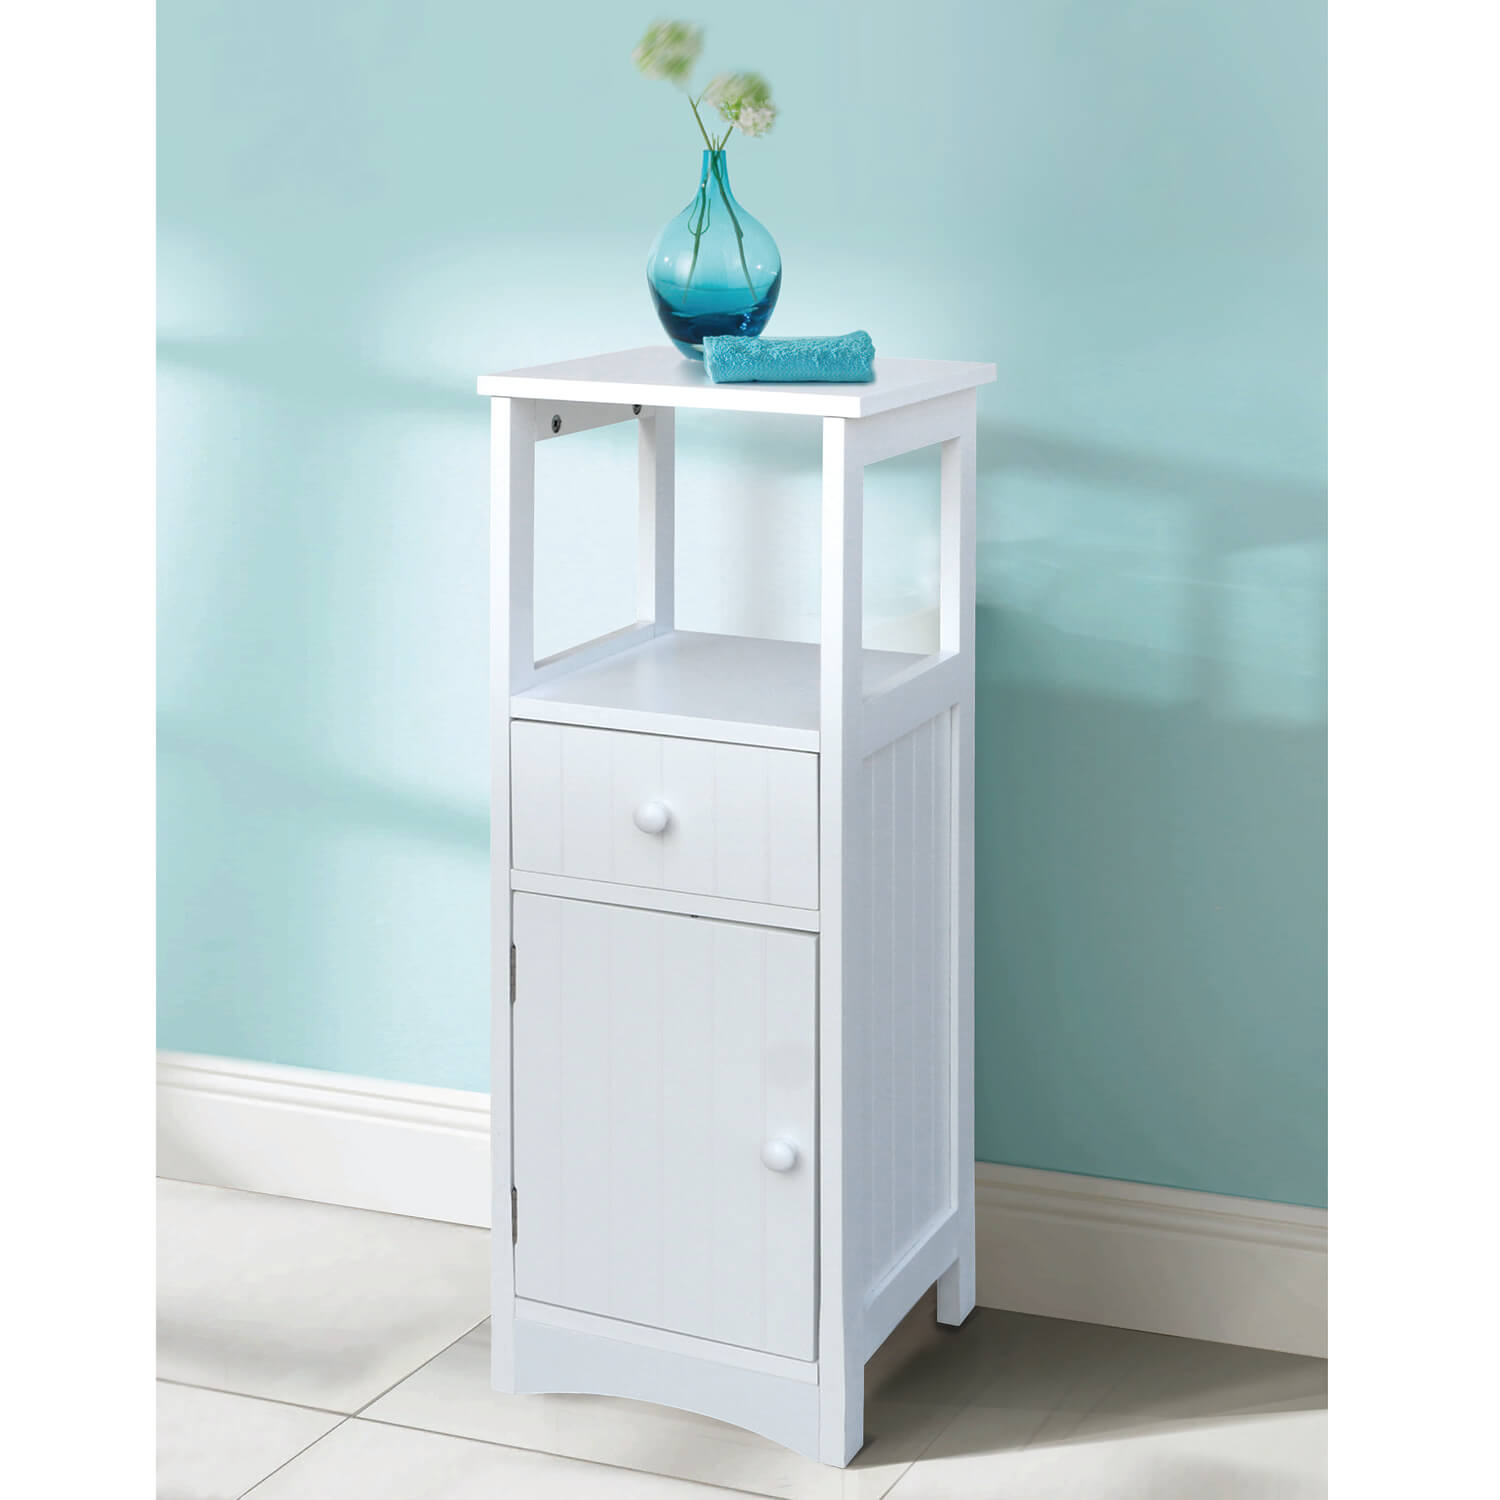 Vermont Bathroom Cabinet With Drawer Home Store More